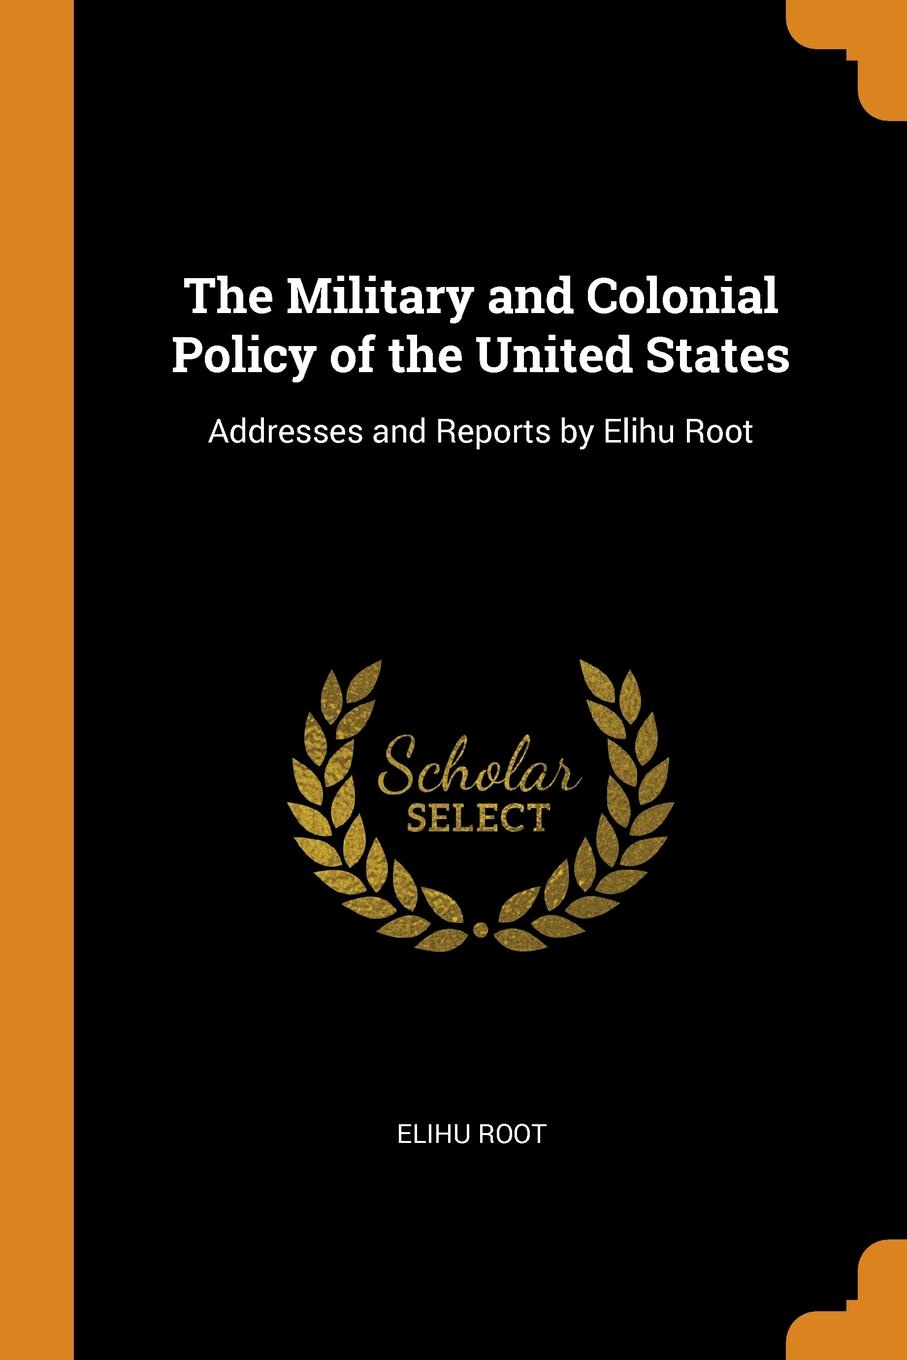 Elihu Root The Military and Colonial Policy of the United States. Addresses and Reports by Elihu Root